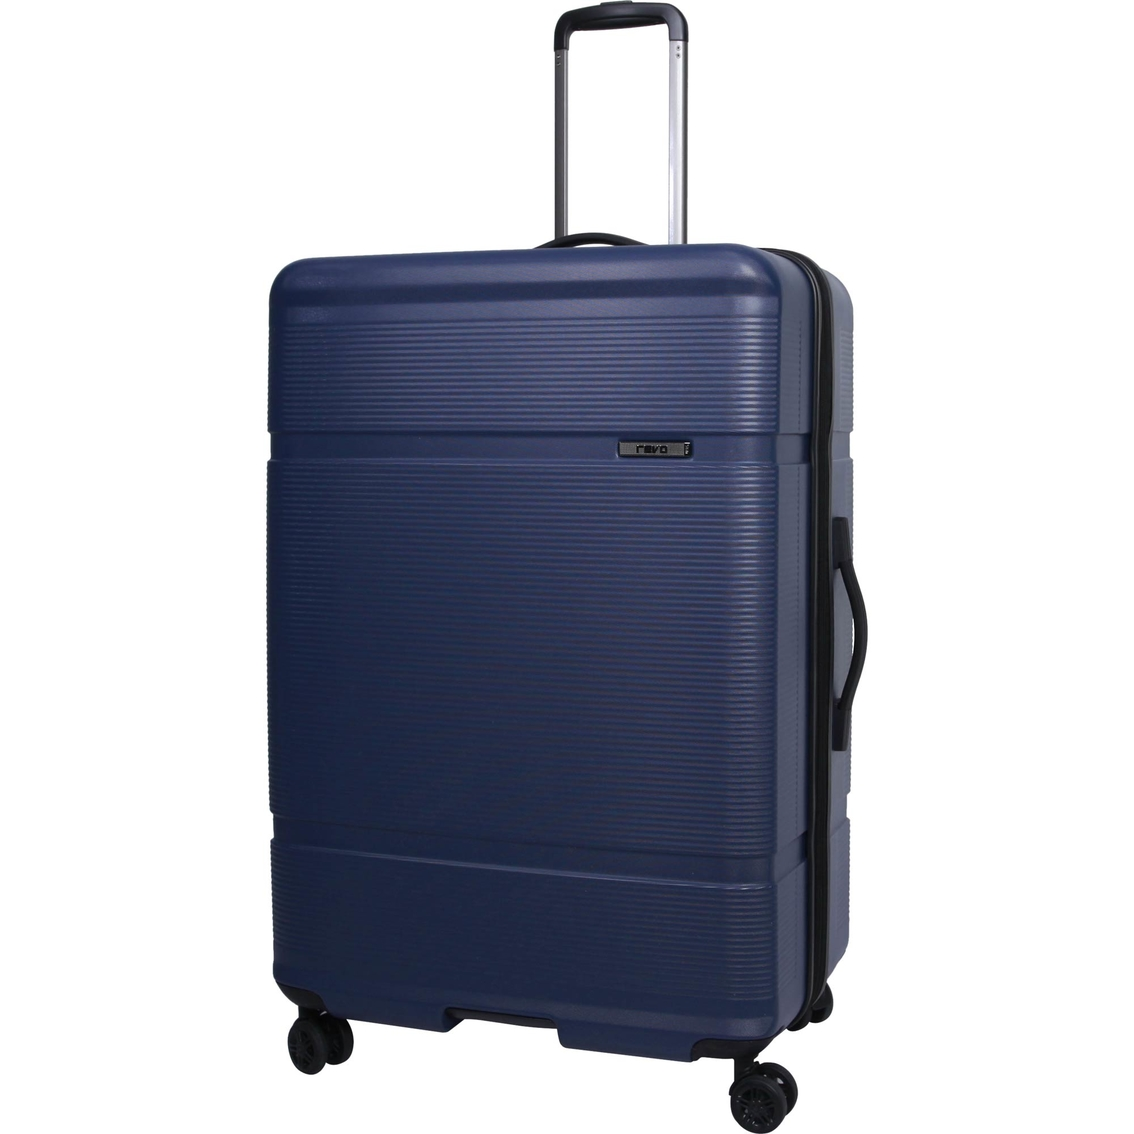 962af8b778 Revo Micro Lite Expandable Spinner Upright Hardside Luggage ...